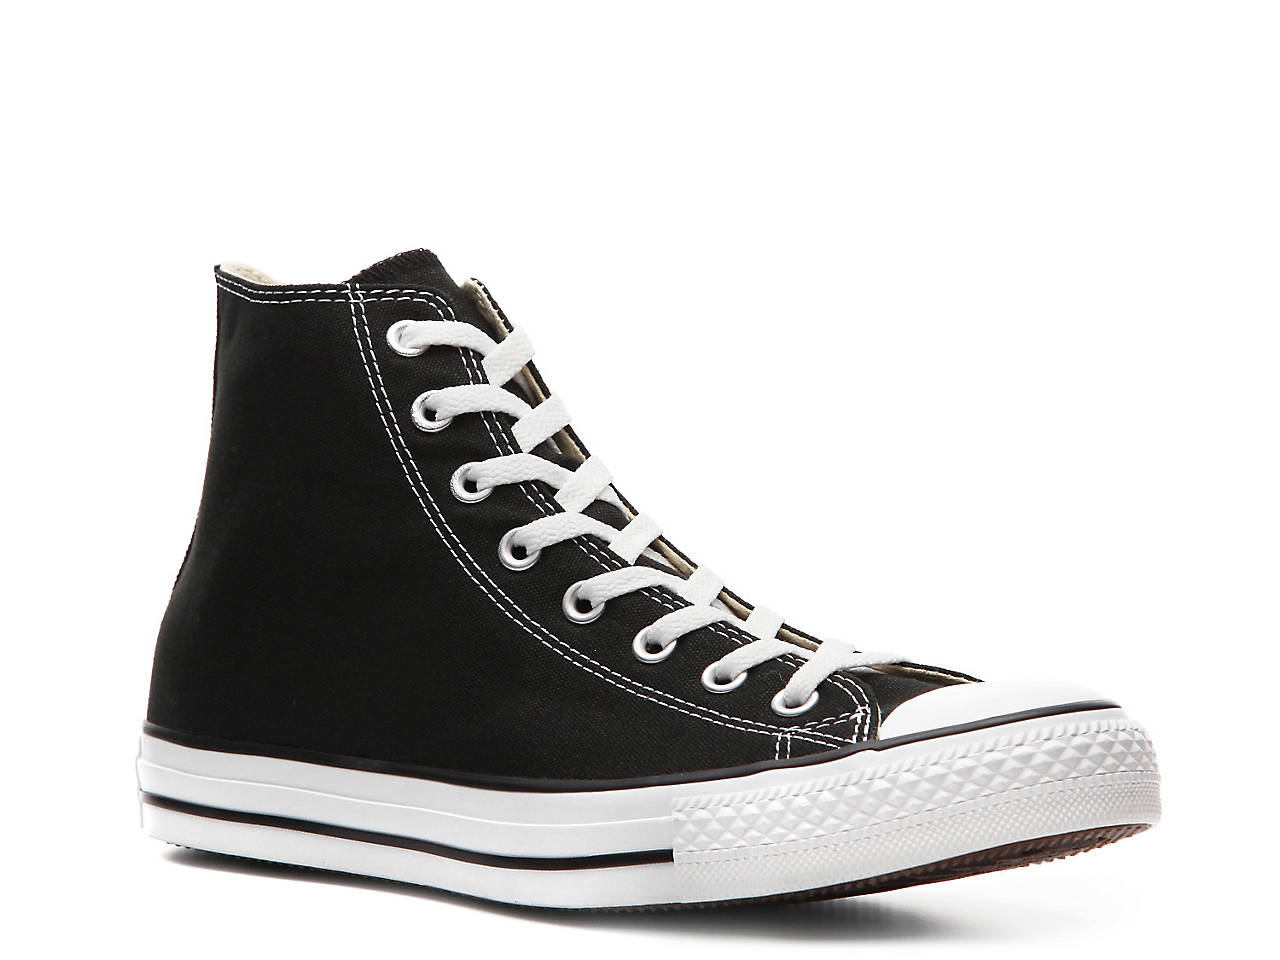 c7178d90341b Converse Chuck Taylor All Star High-Top Sneaker - Men s Men s Shoes ...